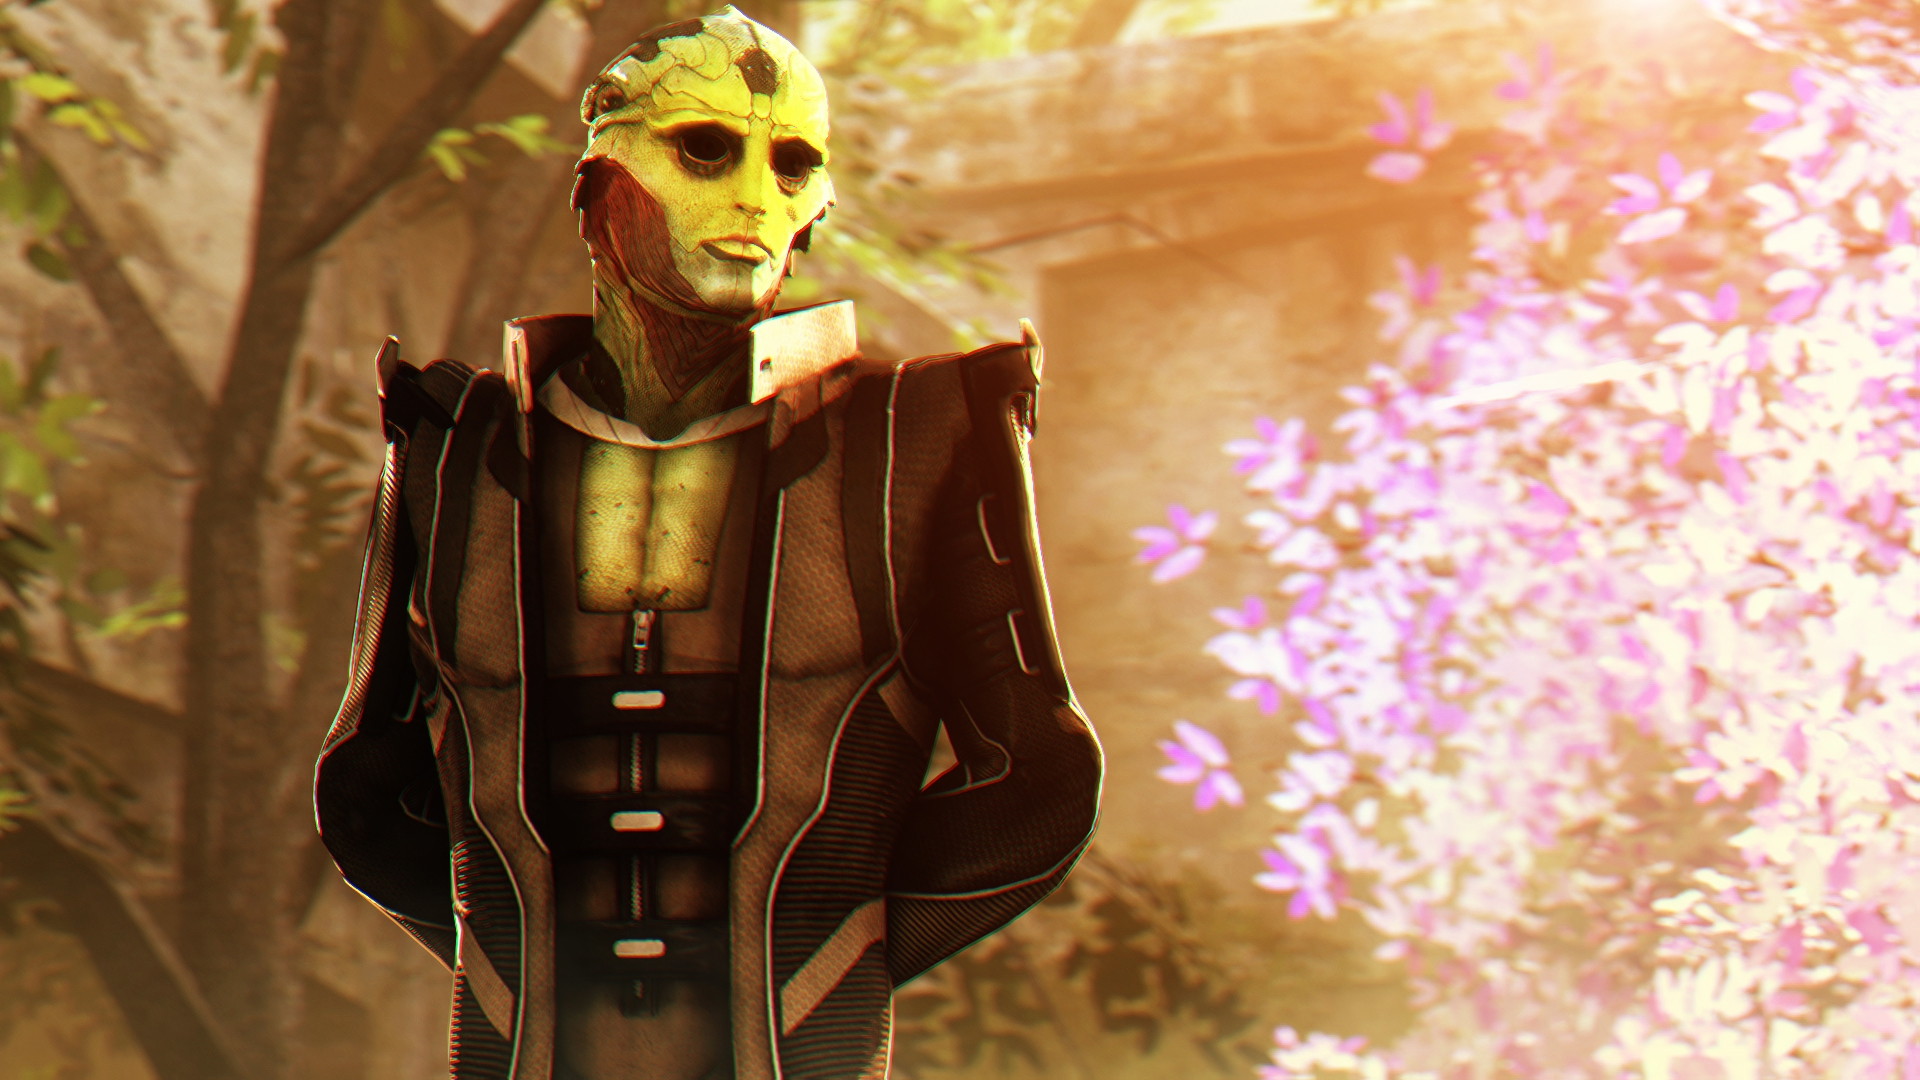 Thane by AngryRabbitGmoD